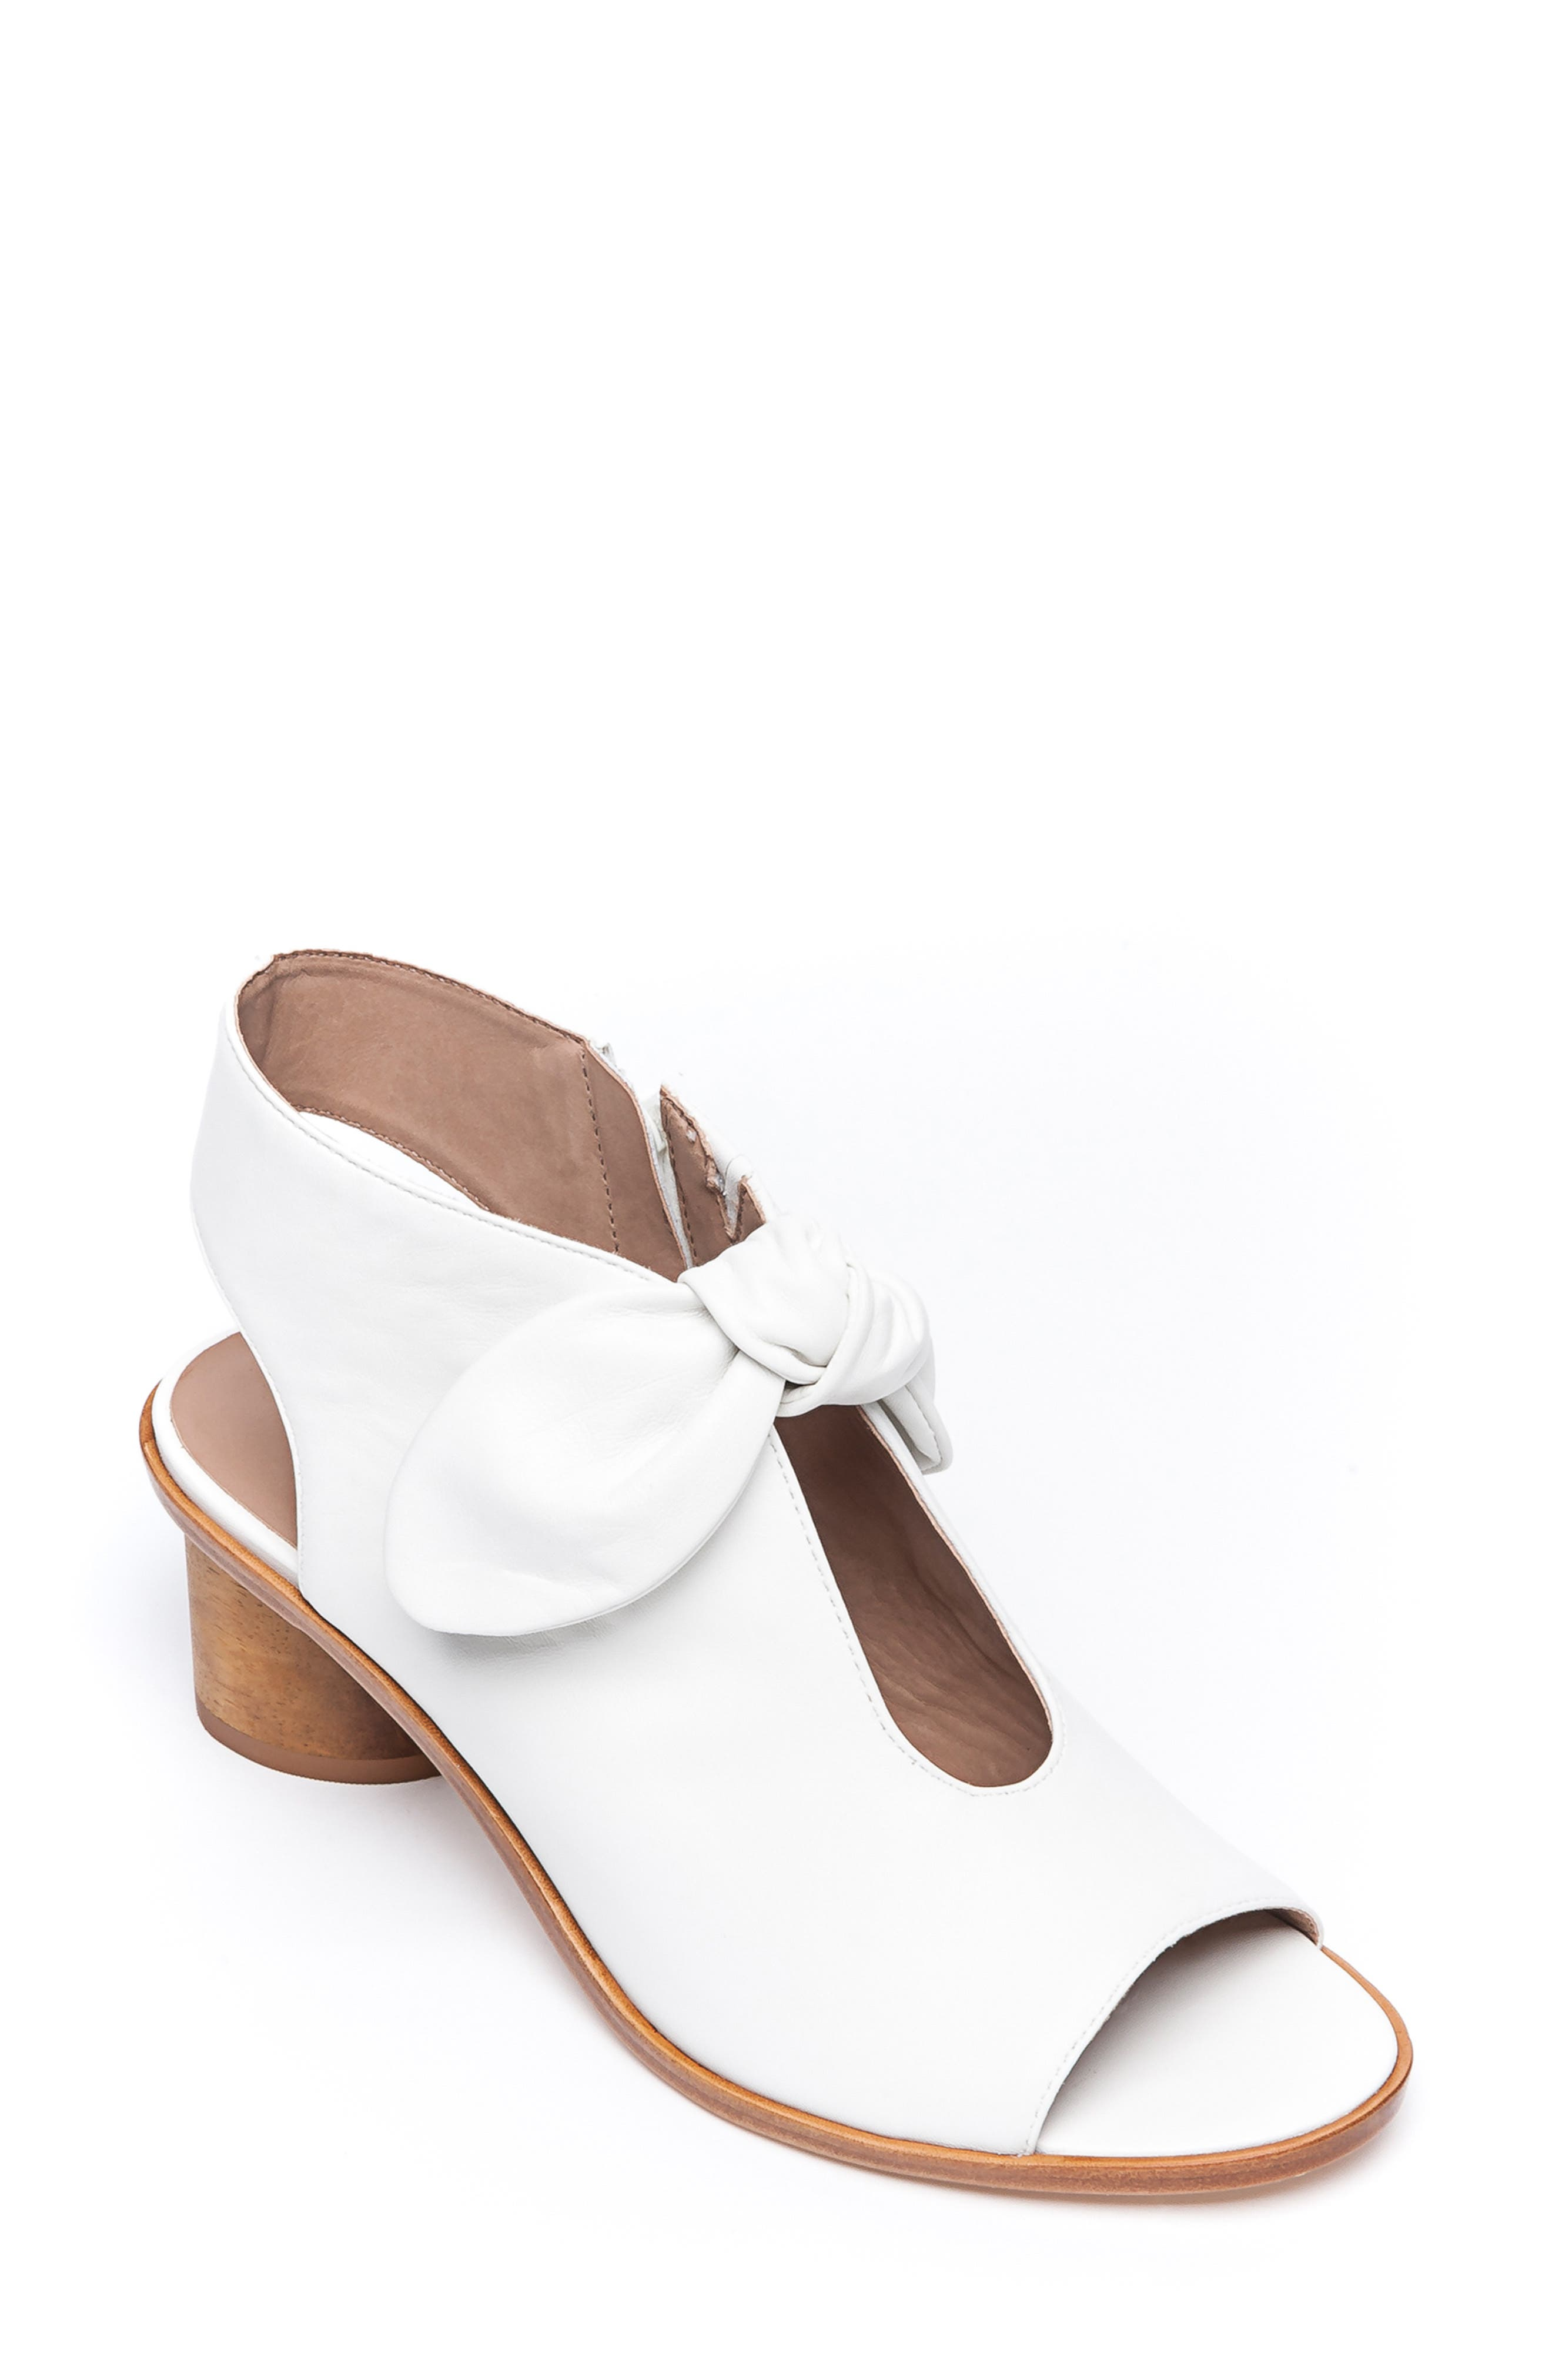 Bernardo Luna Sandal,                         Main,                         color, WHITE LEATHER